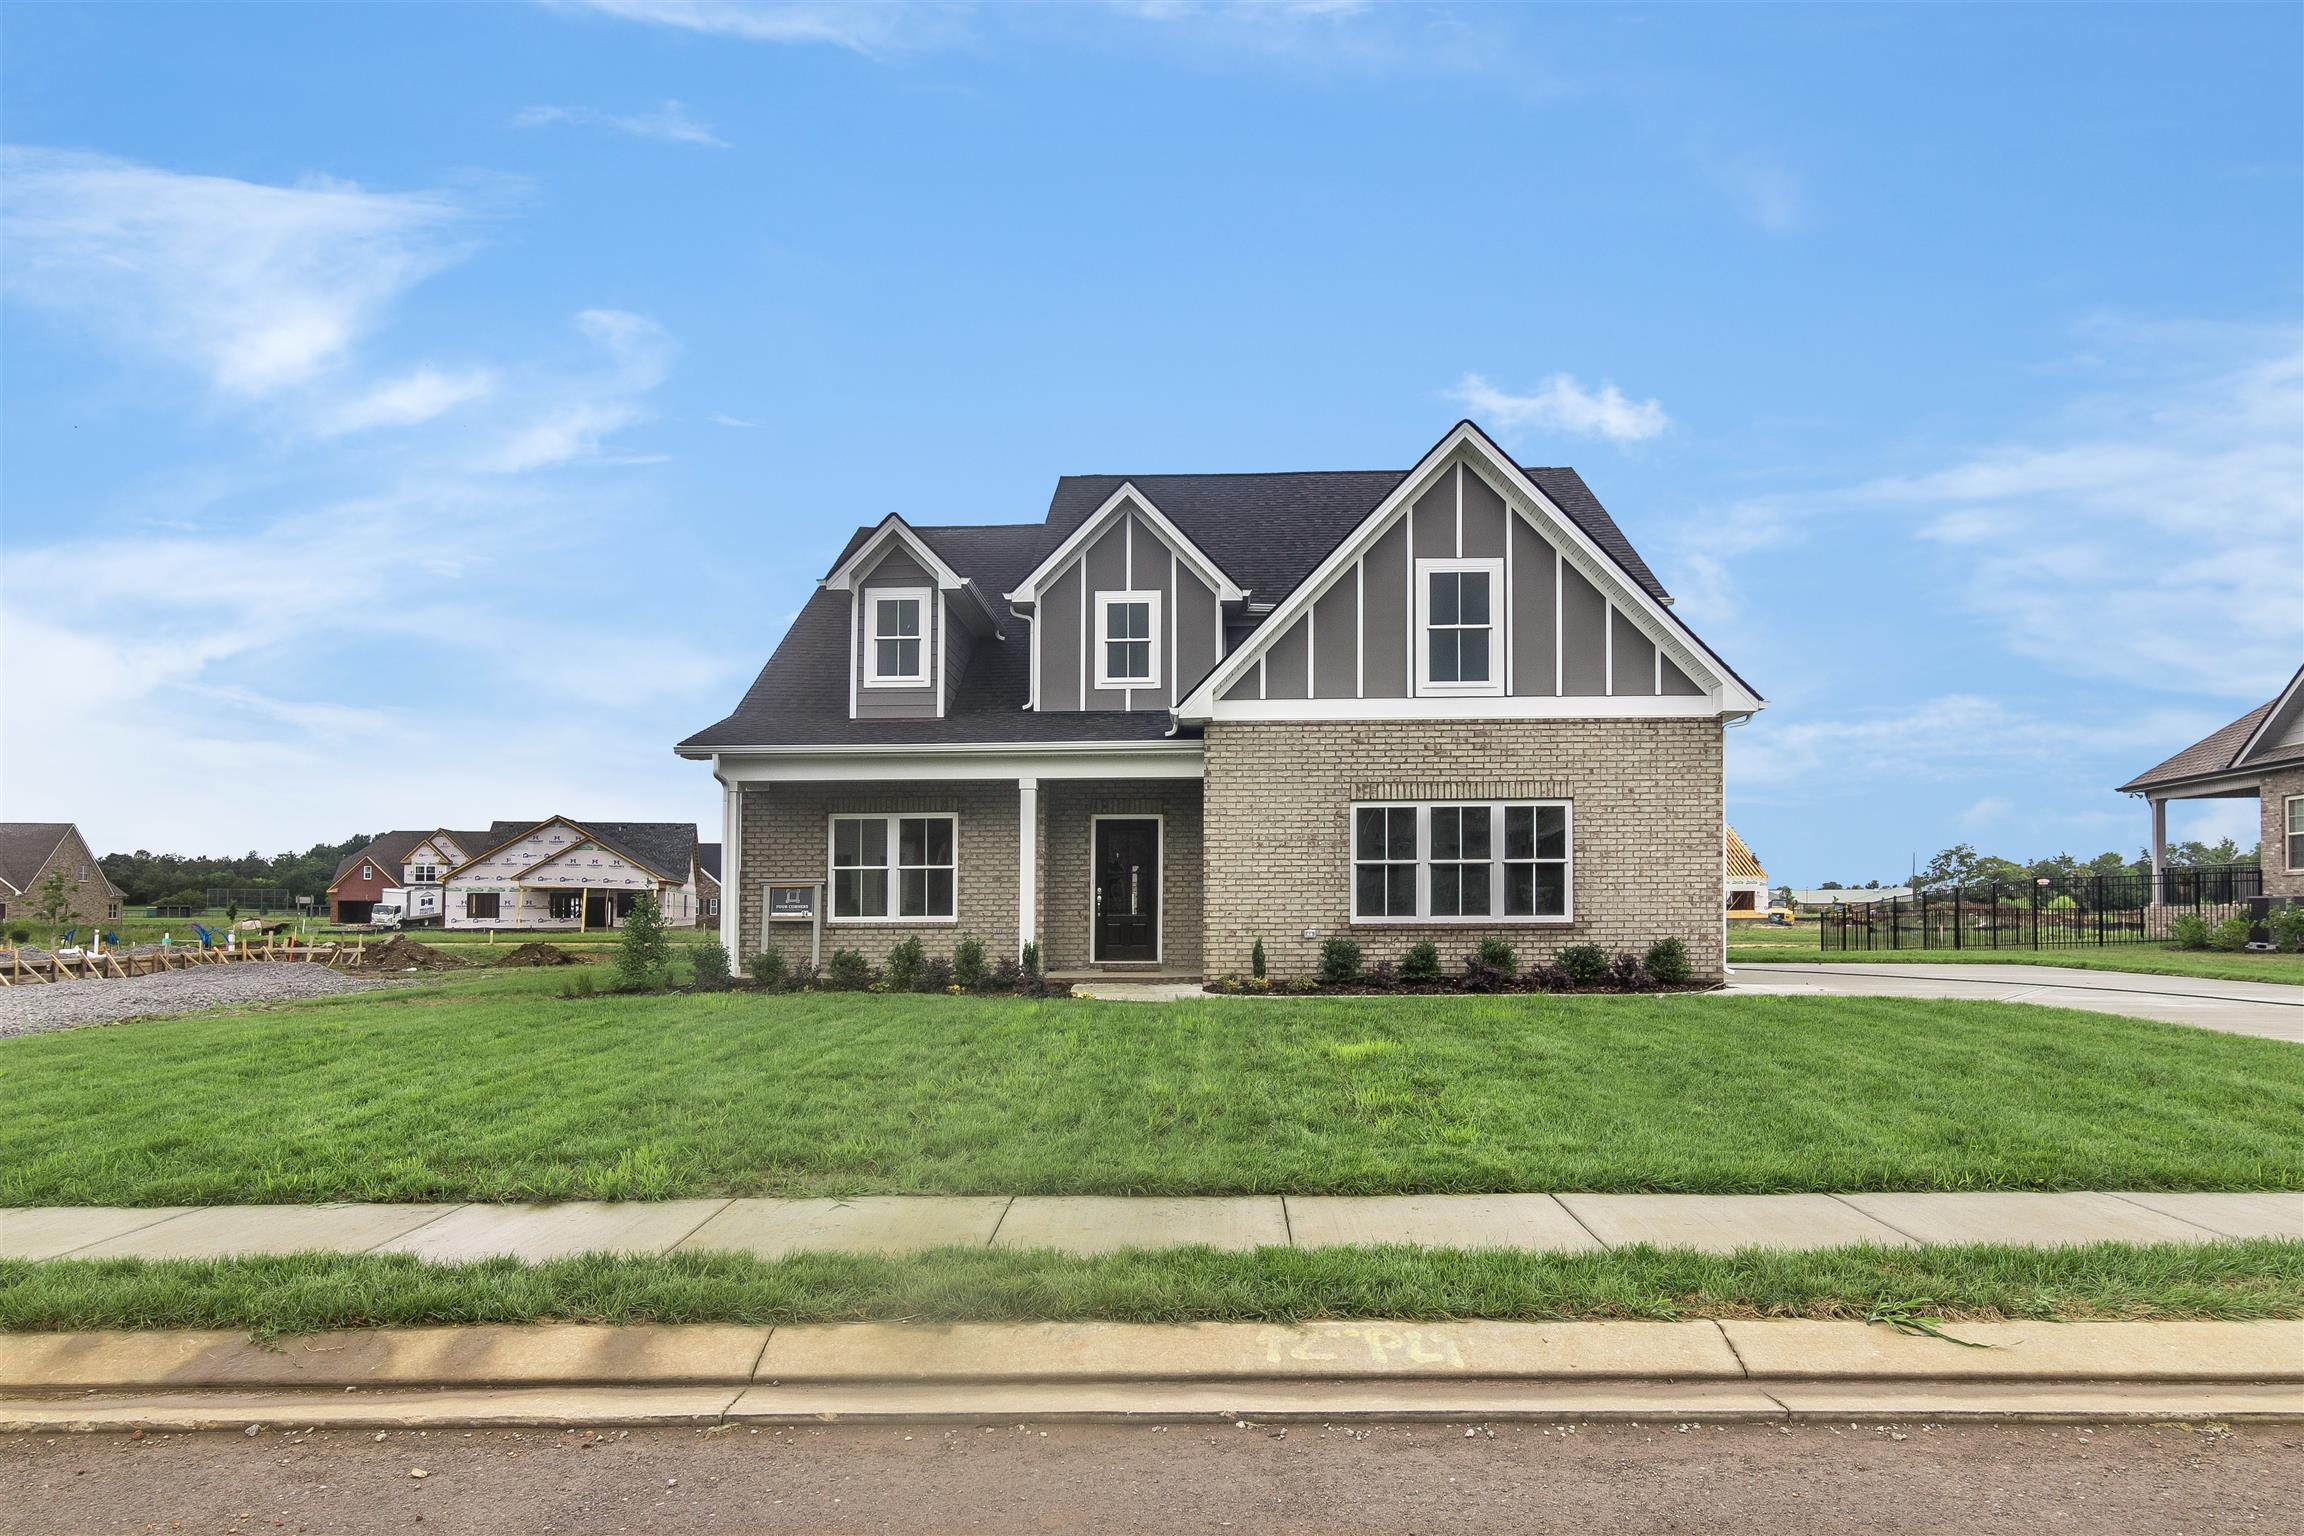 4013 Gilreath Place (Lot 94) 37127 - One of Murfreesboro Homes for Sale